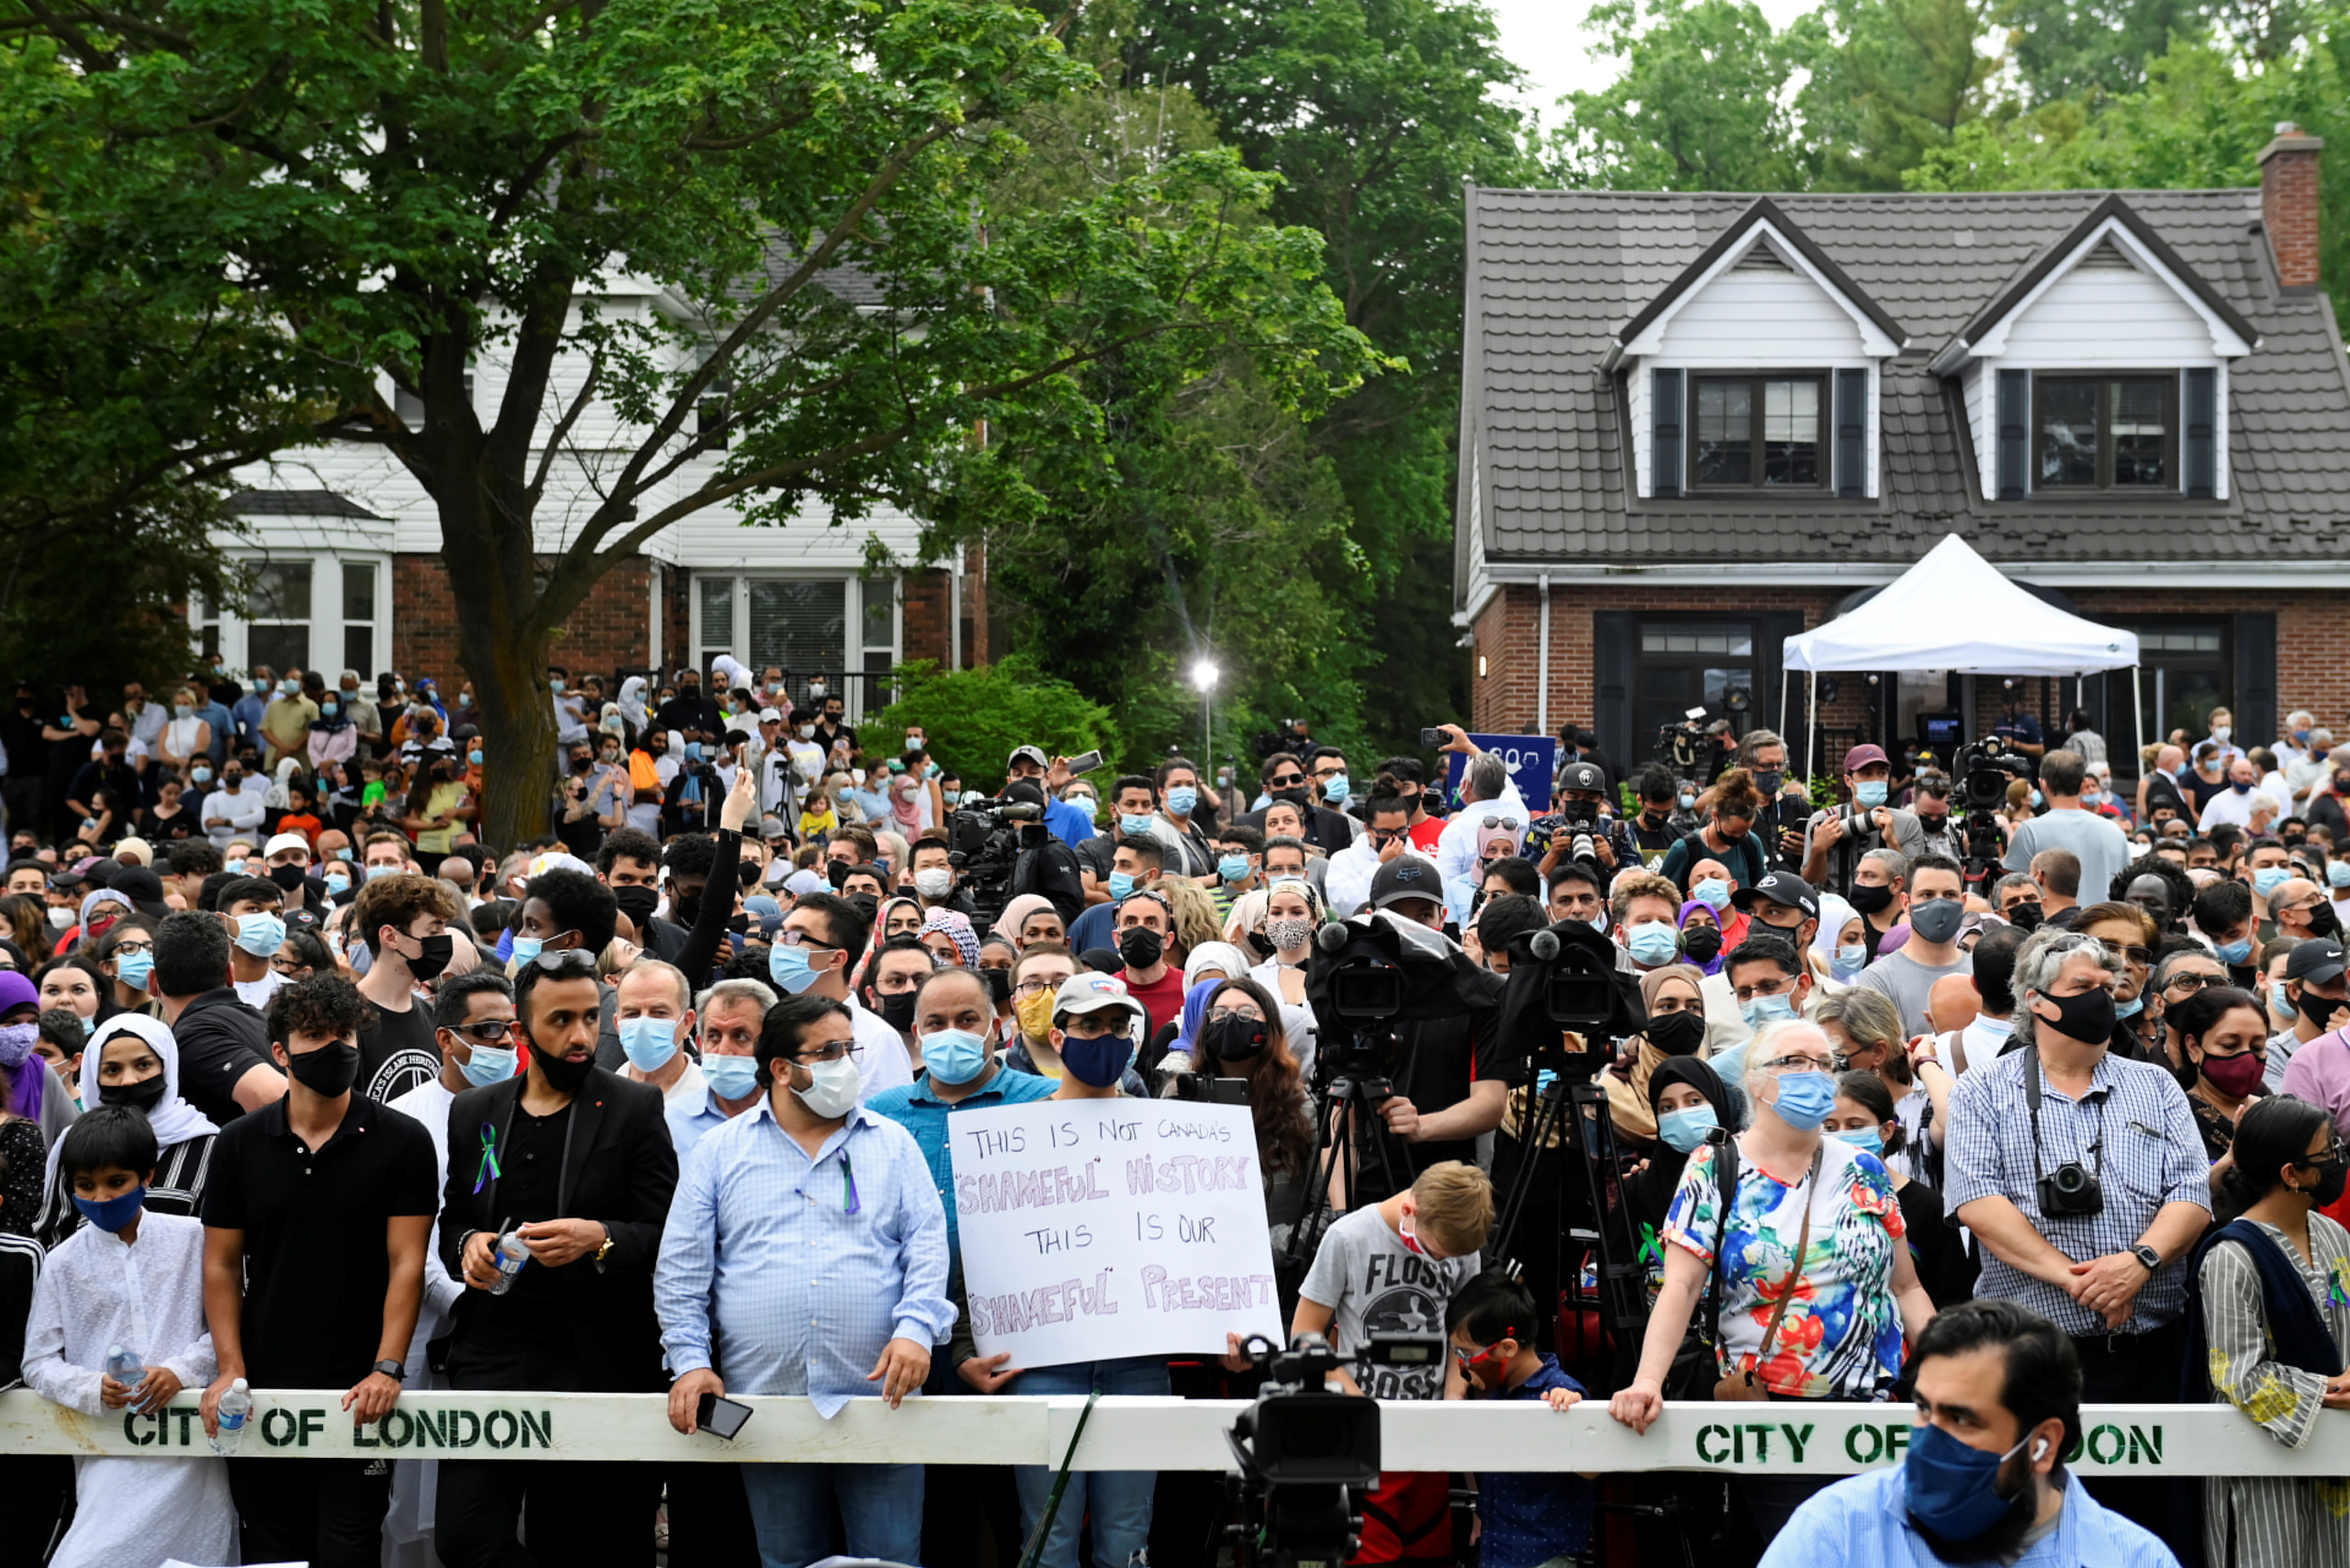 People attend a vigil outside the London Muslim Mosque organized after four members of a Canadian Muslim family were killed in what police describe as a hate-motivated attack in London, Ontario, Canada, June 8, 2021. Nathan Denette/Pool via REUTERS